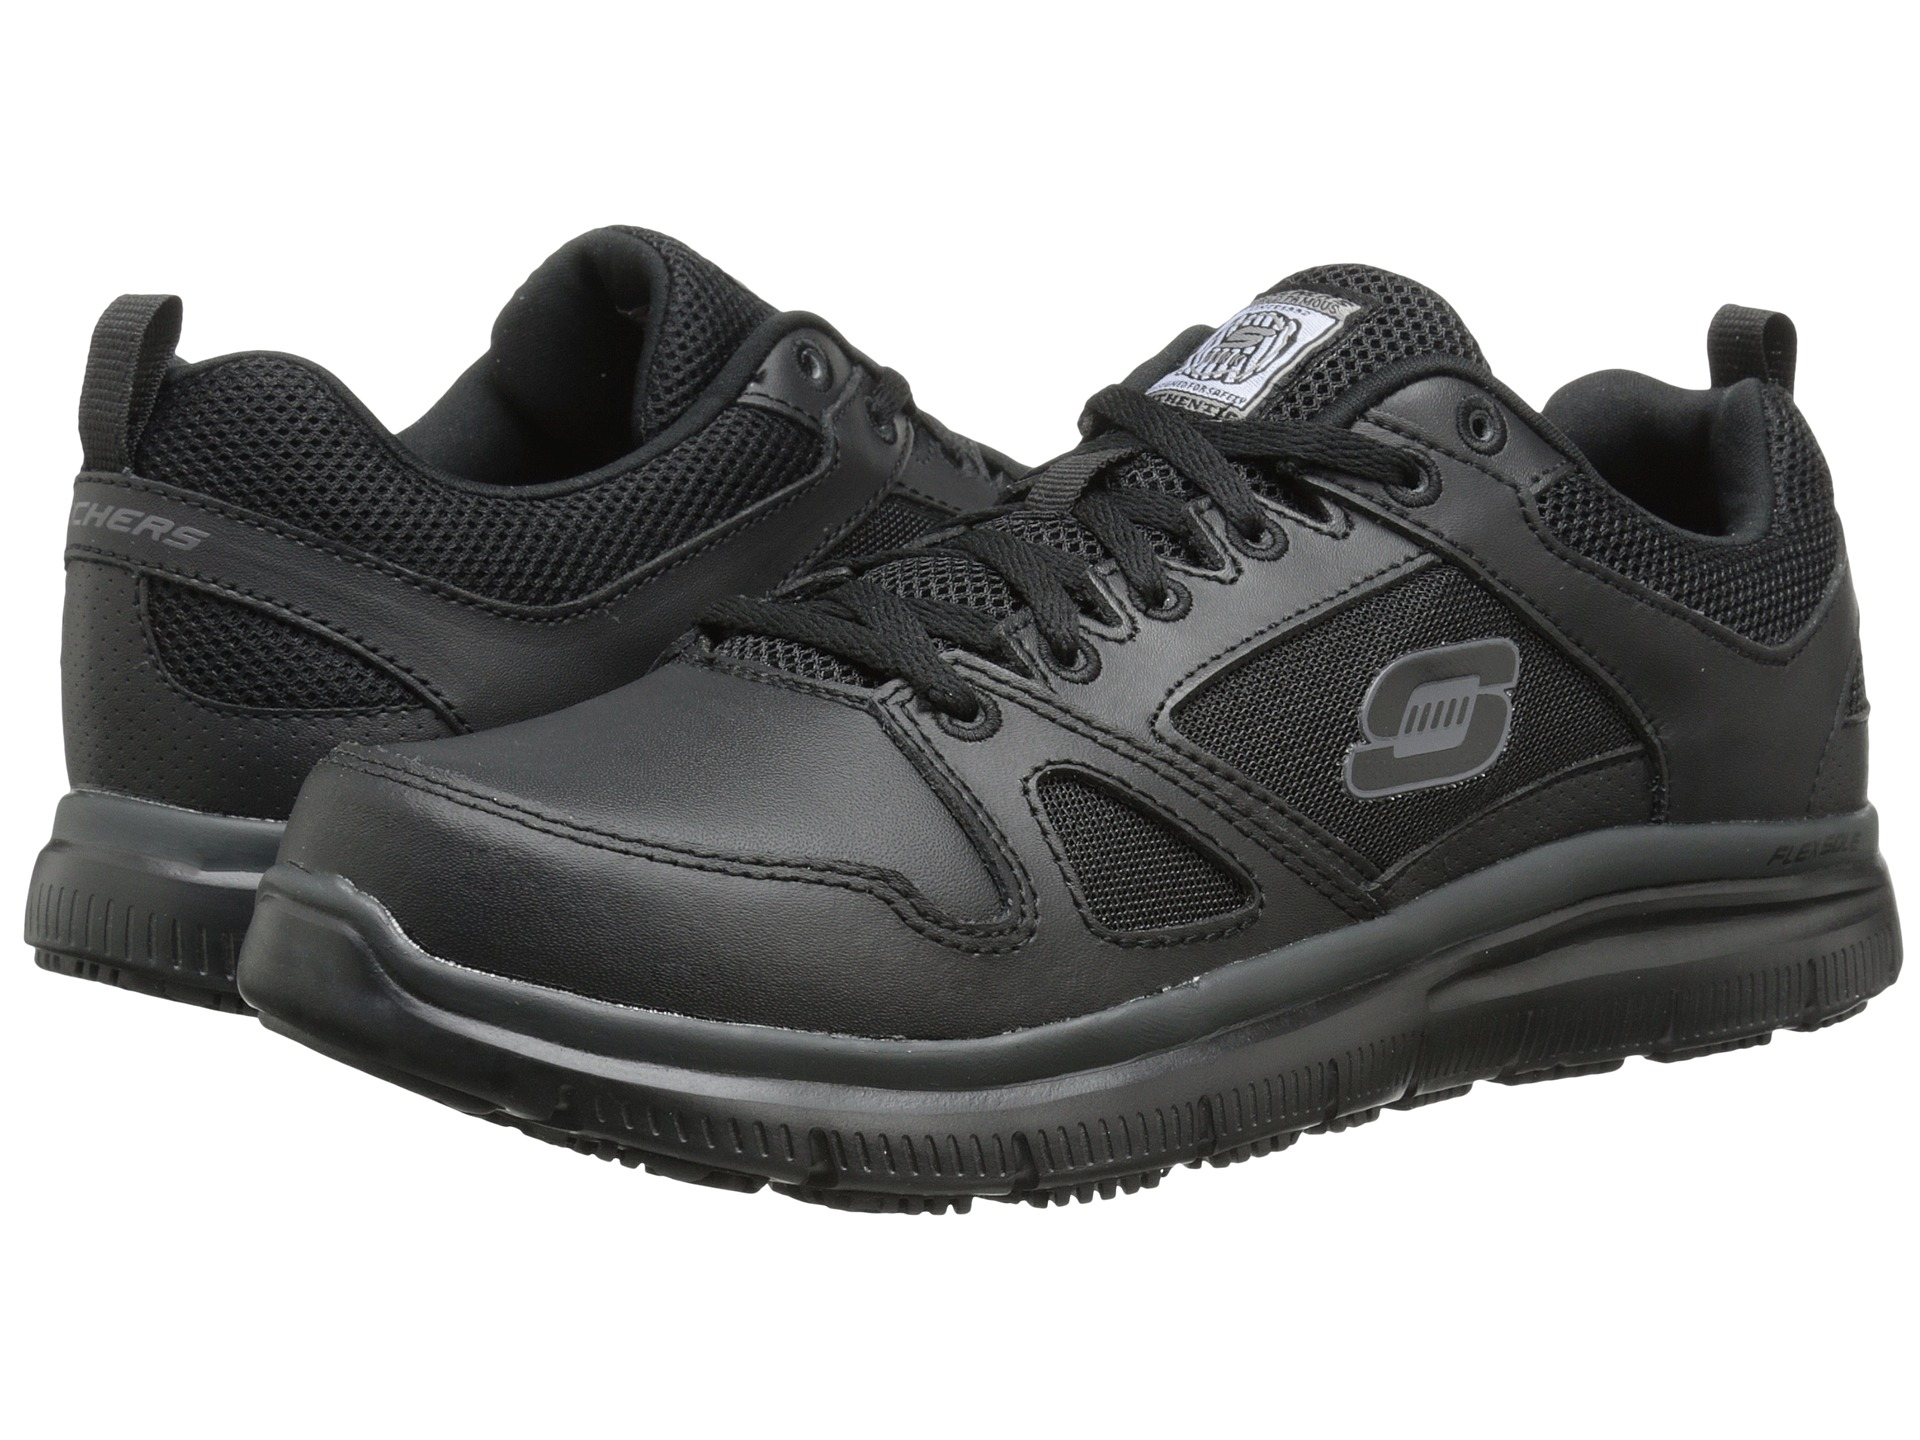 SKECHERS Work Flex - Advantage - Zappos.com Free Shipping BOTH Ways